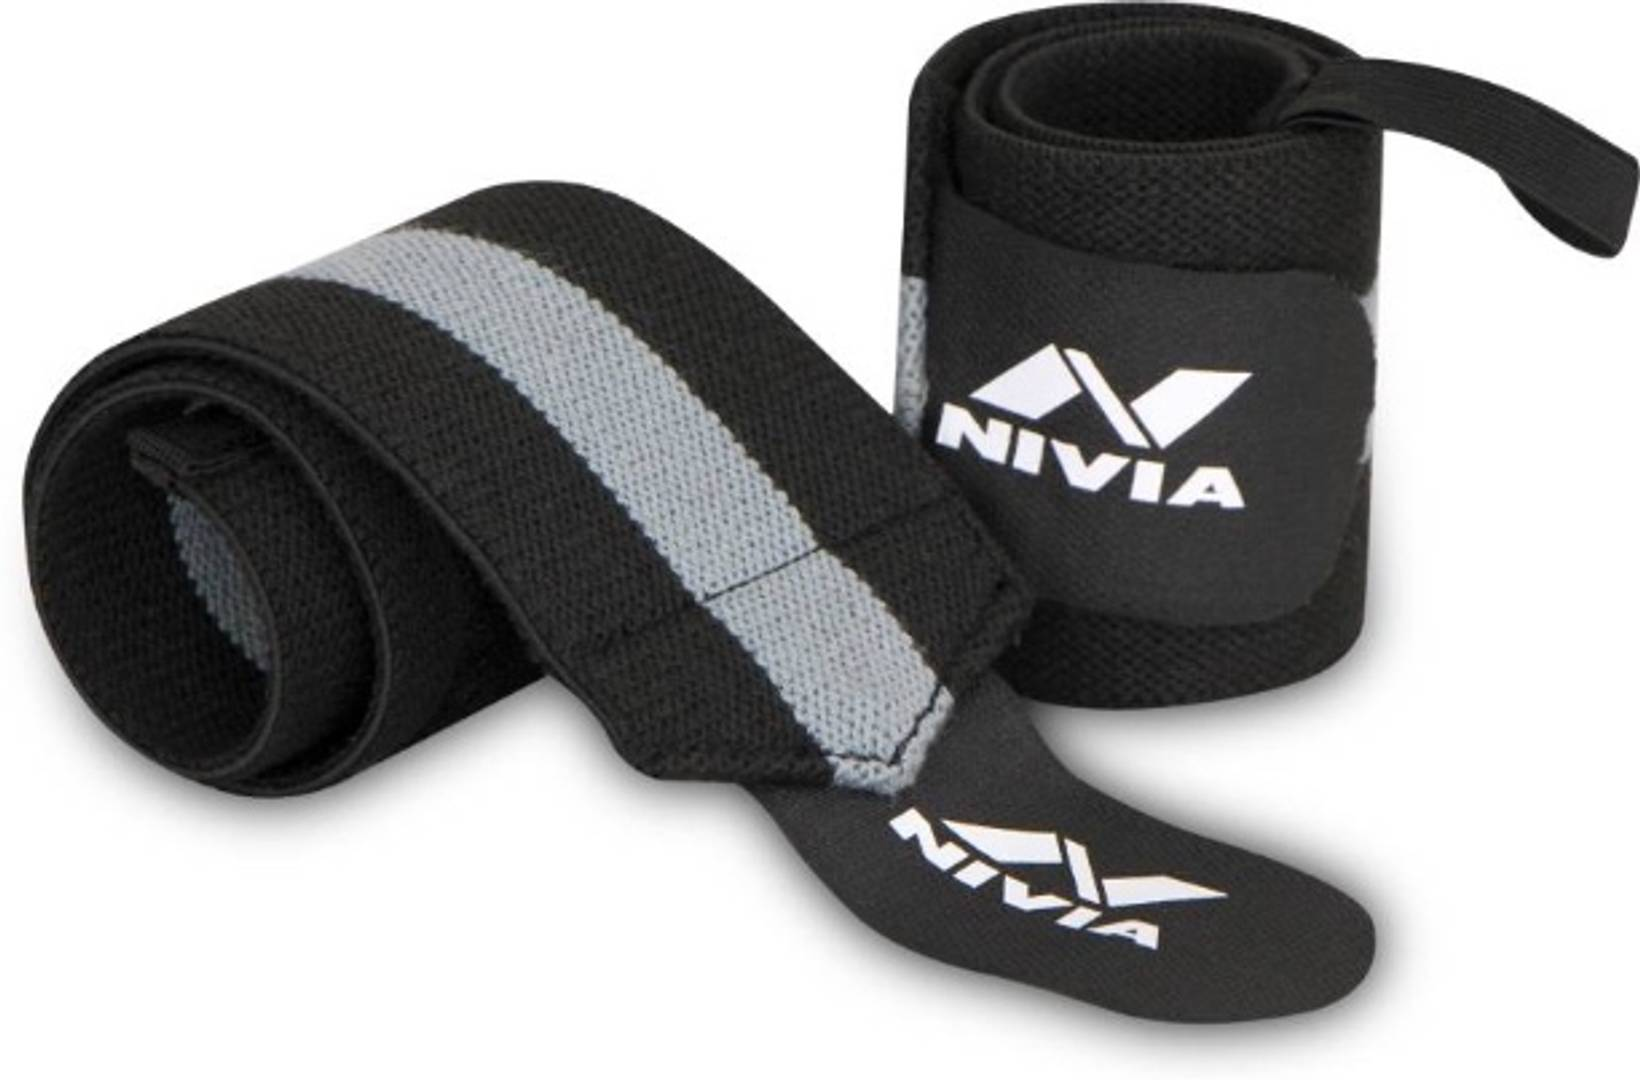 Weight Lifting Wrist Support (Pack of 2) Wrist Support  (Black)